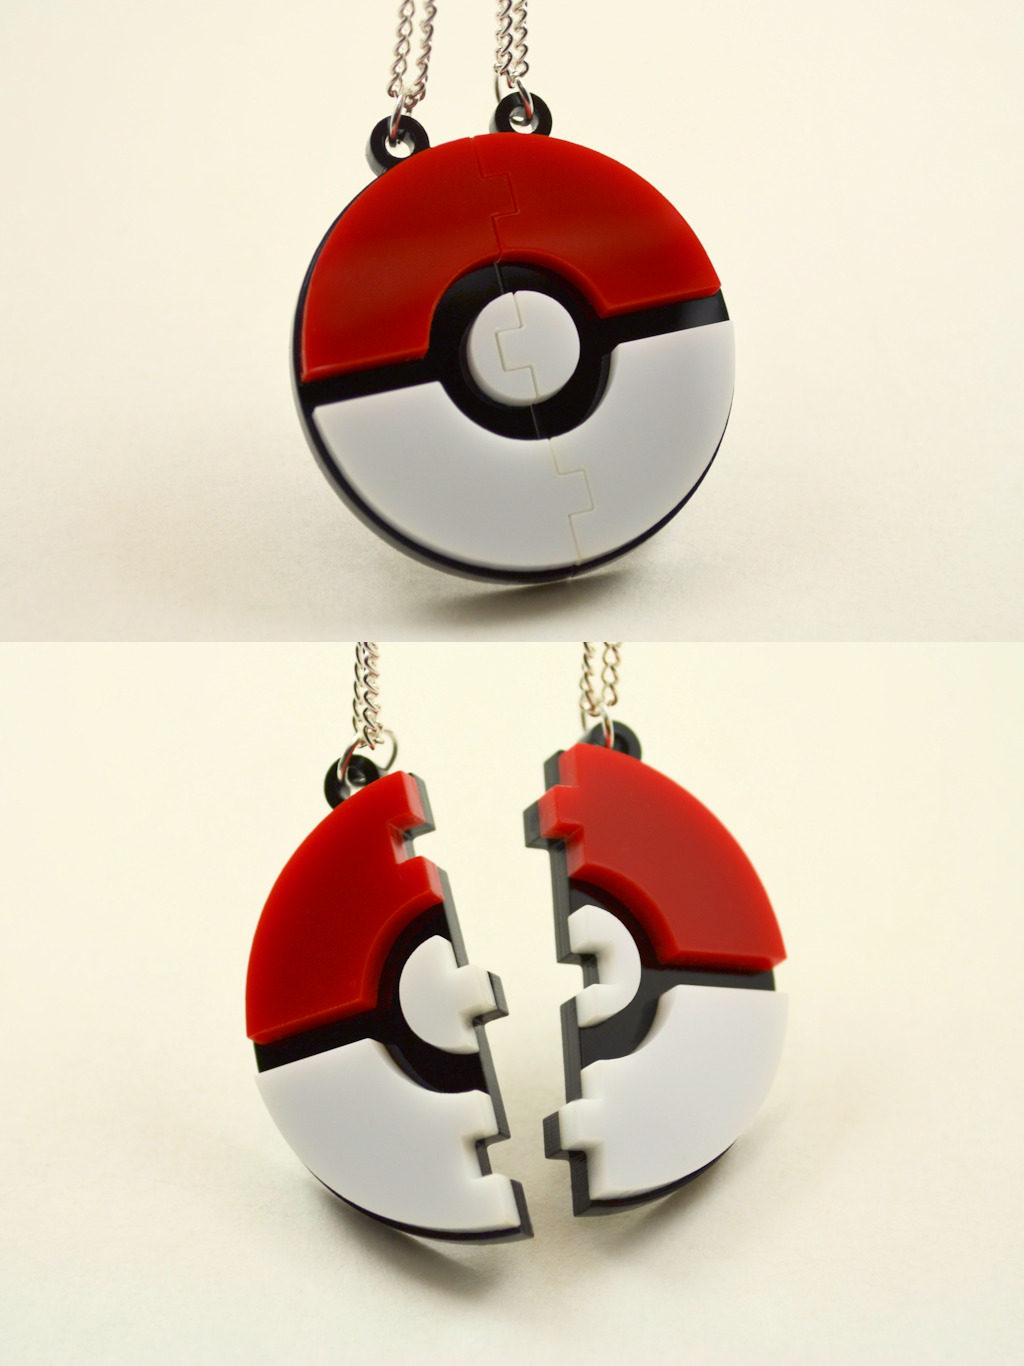 licketycut:  Pokeball Friendship Necklaces - Laser Cut Acrylic   I waaaaannnnttttttt gsgsshzhshshhahs